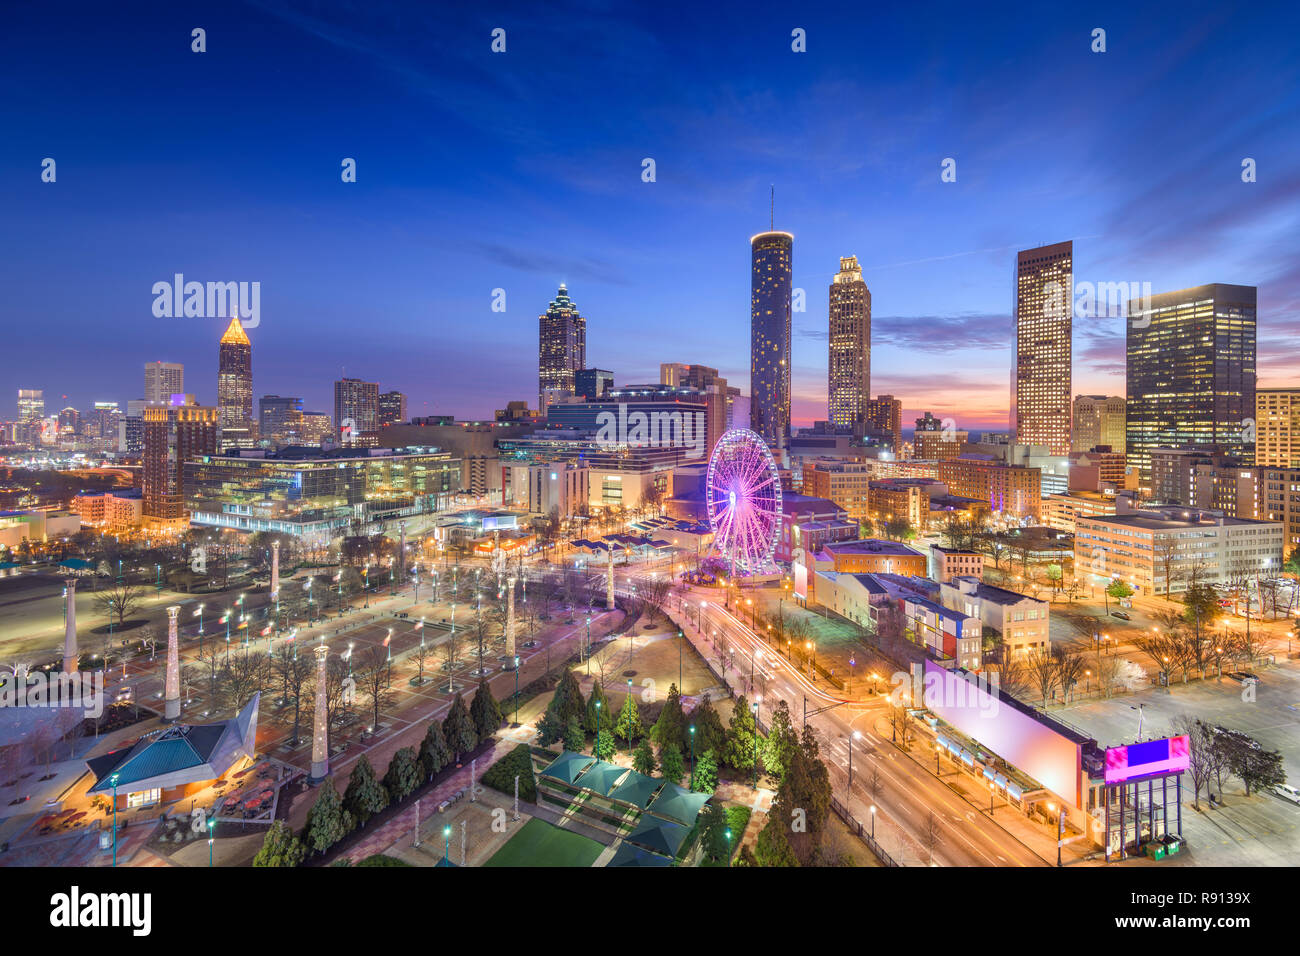 Atlanta, Georgia, USA downtown skyline at dawn. - Stock Image